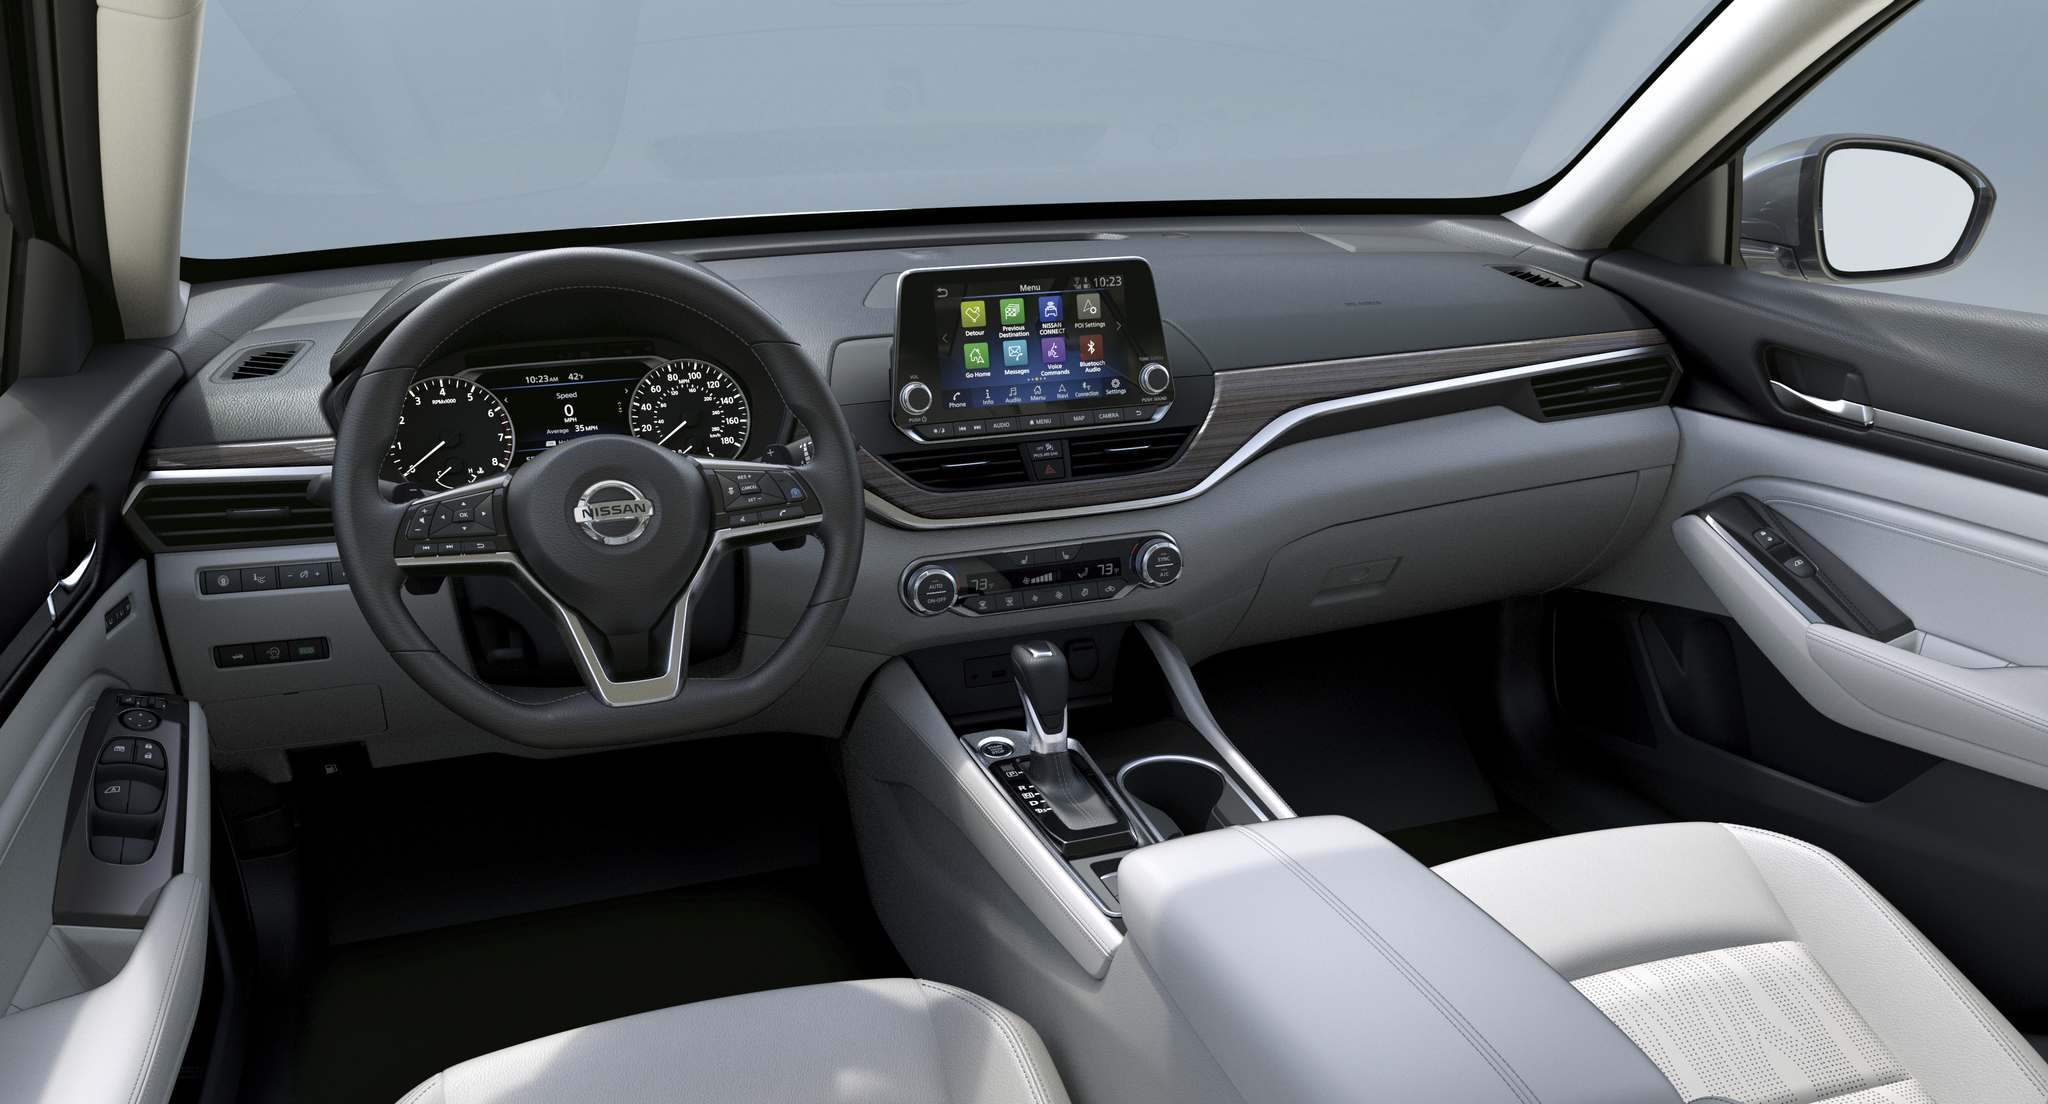 Nissan A large touchscreen display above the centre console controls audio and connectivity.